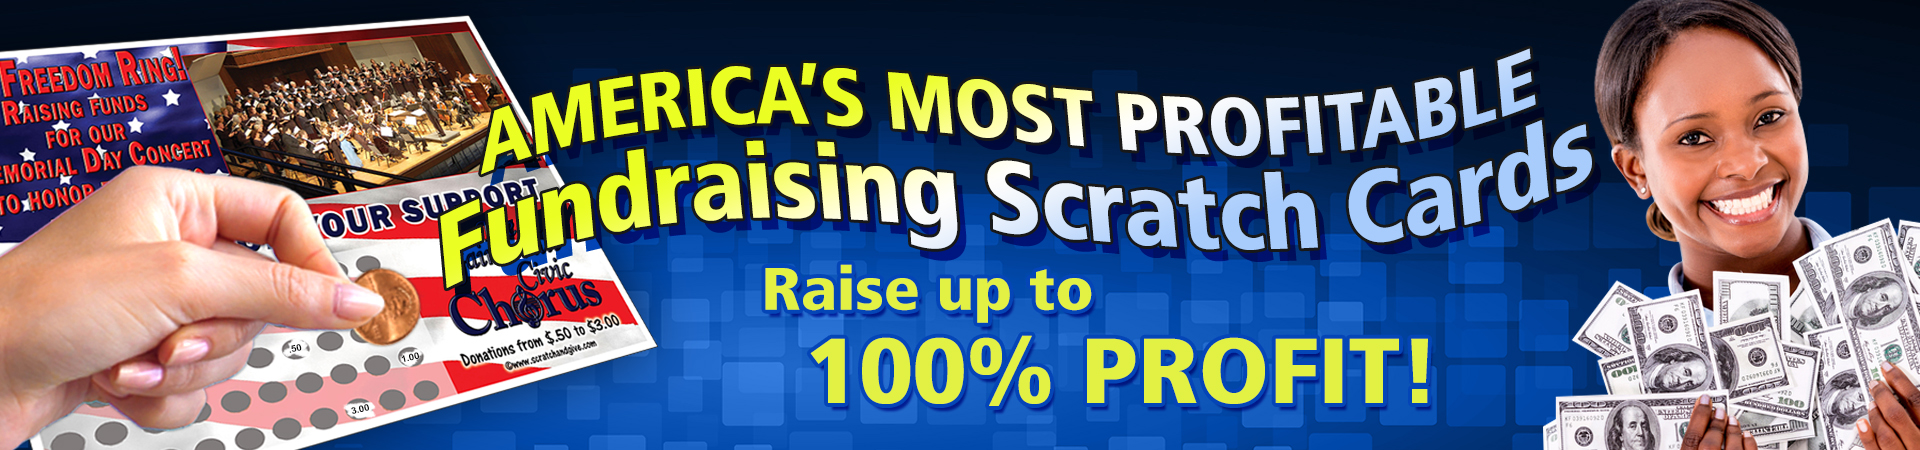 Fundraising Scratch off Cards